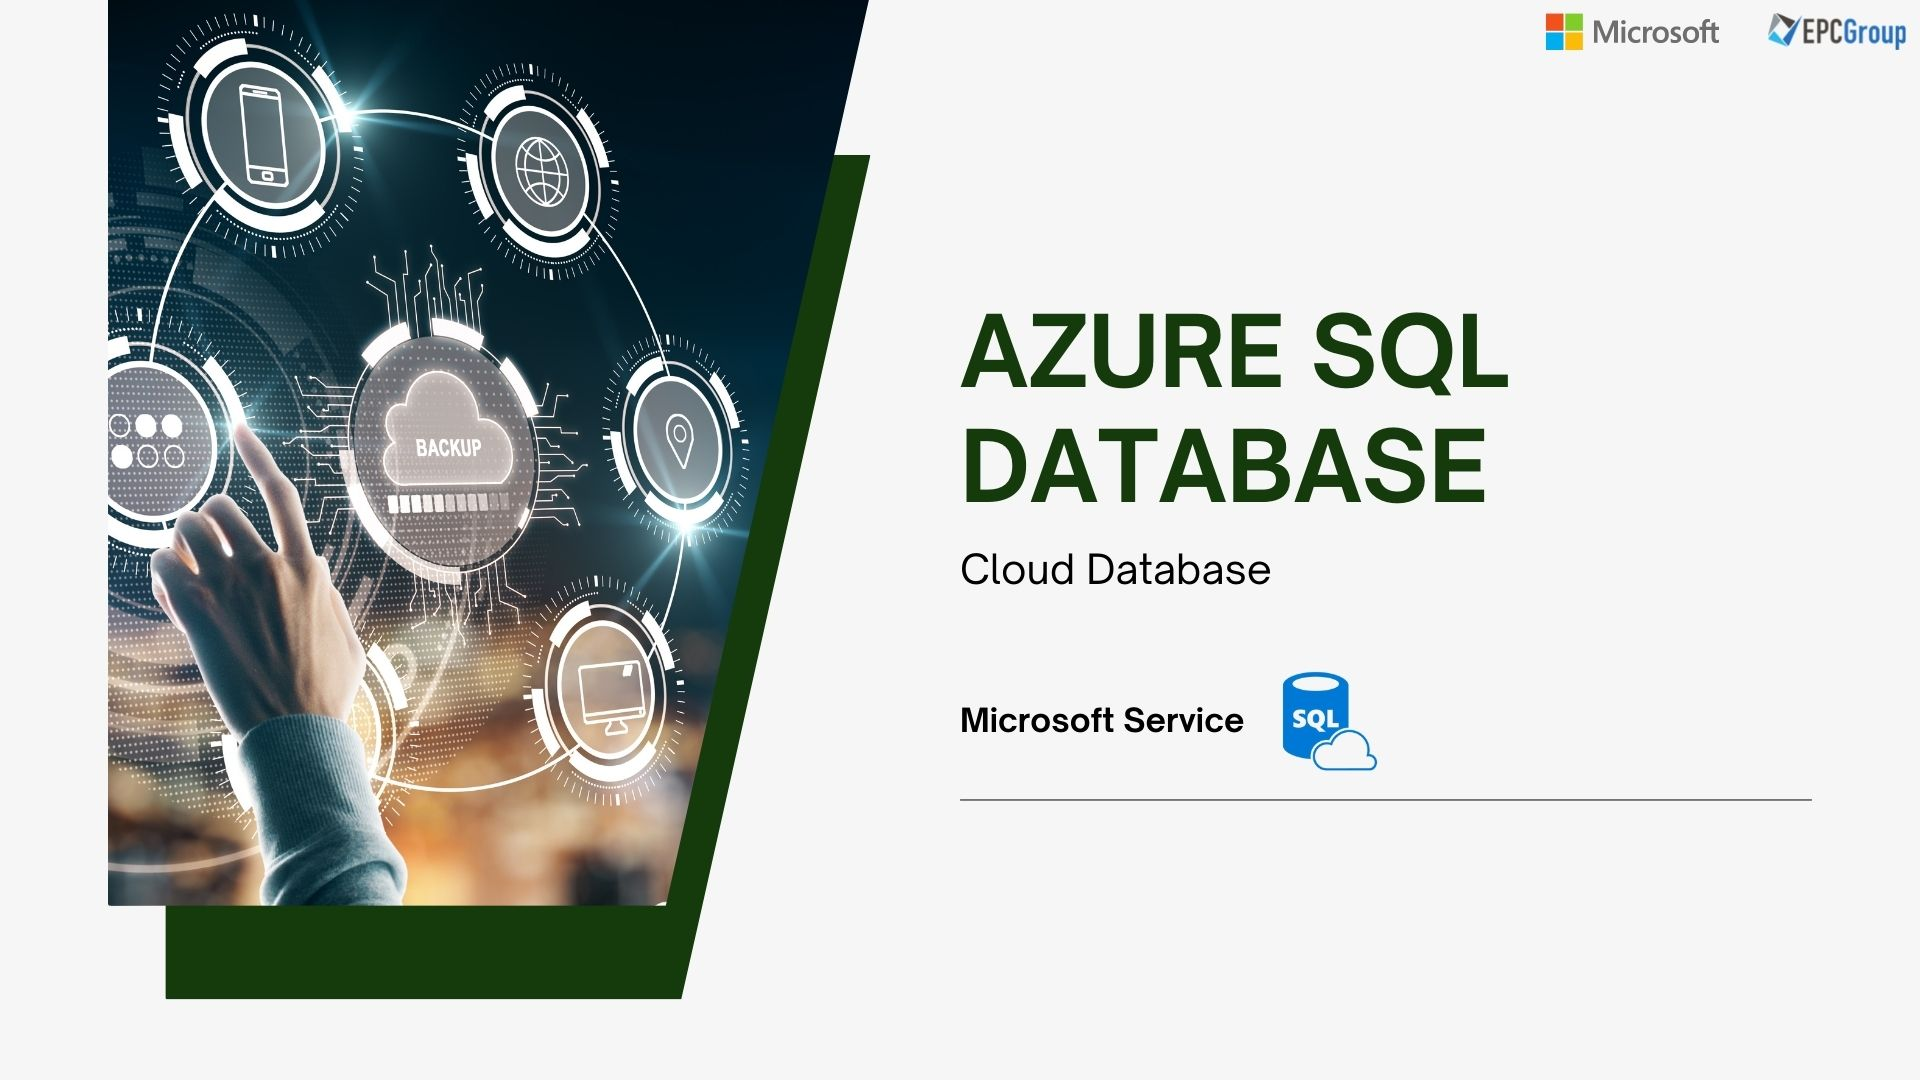 Microsoft Azure SQL Database Pricing & Features: Managed Cloud Database By Microsoft - thumb image